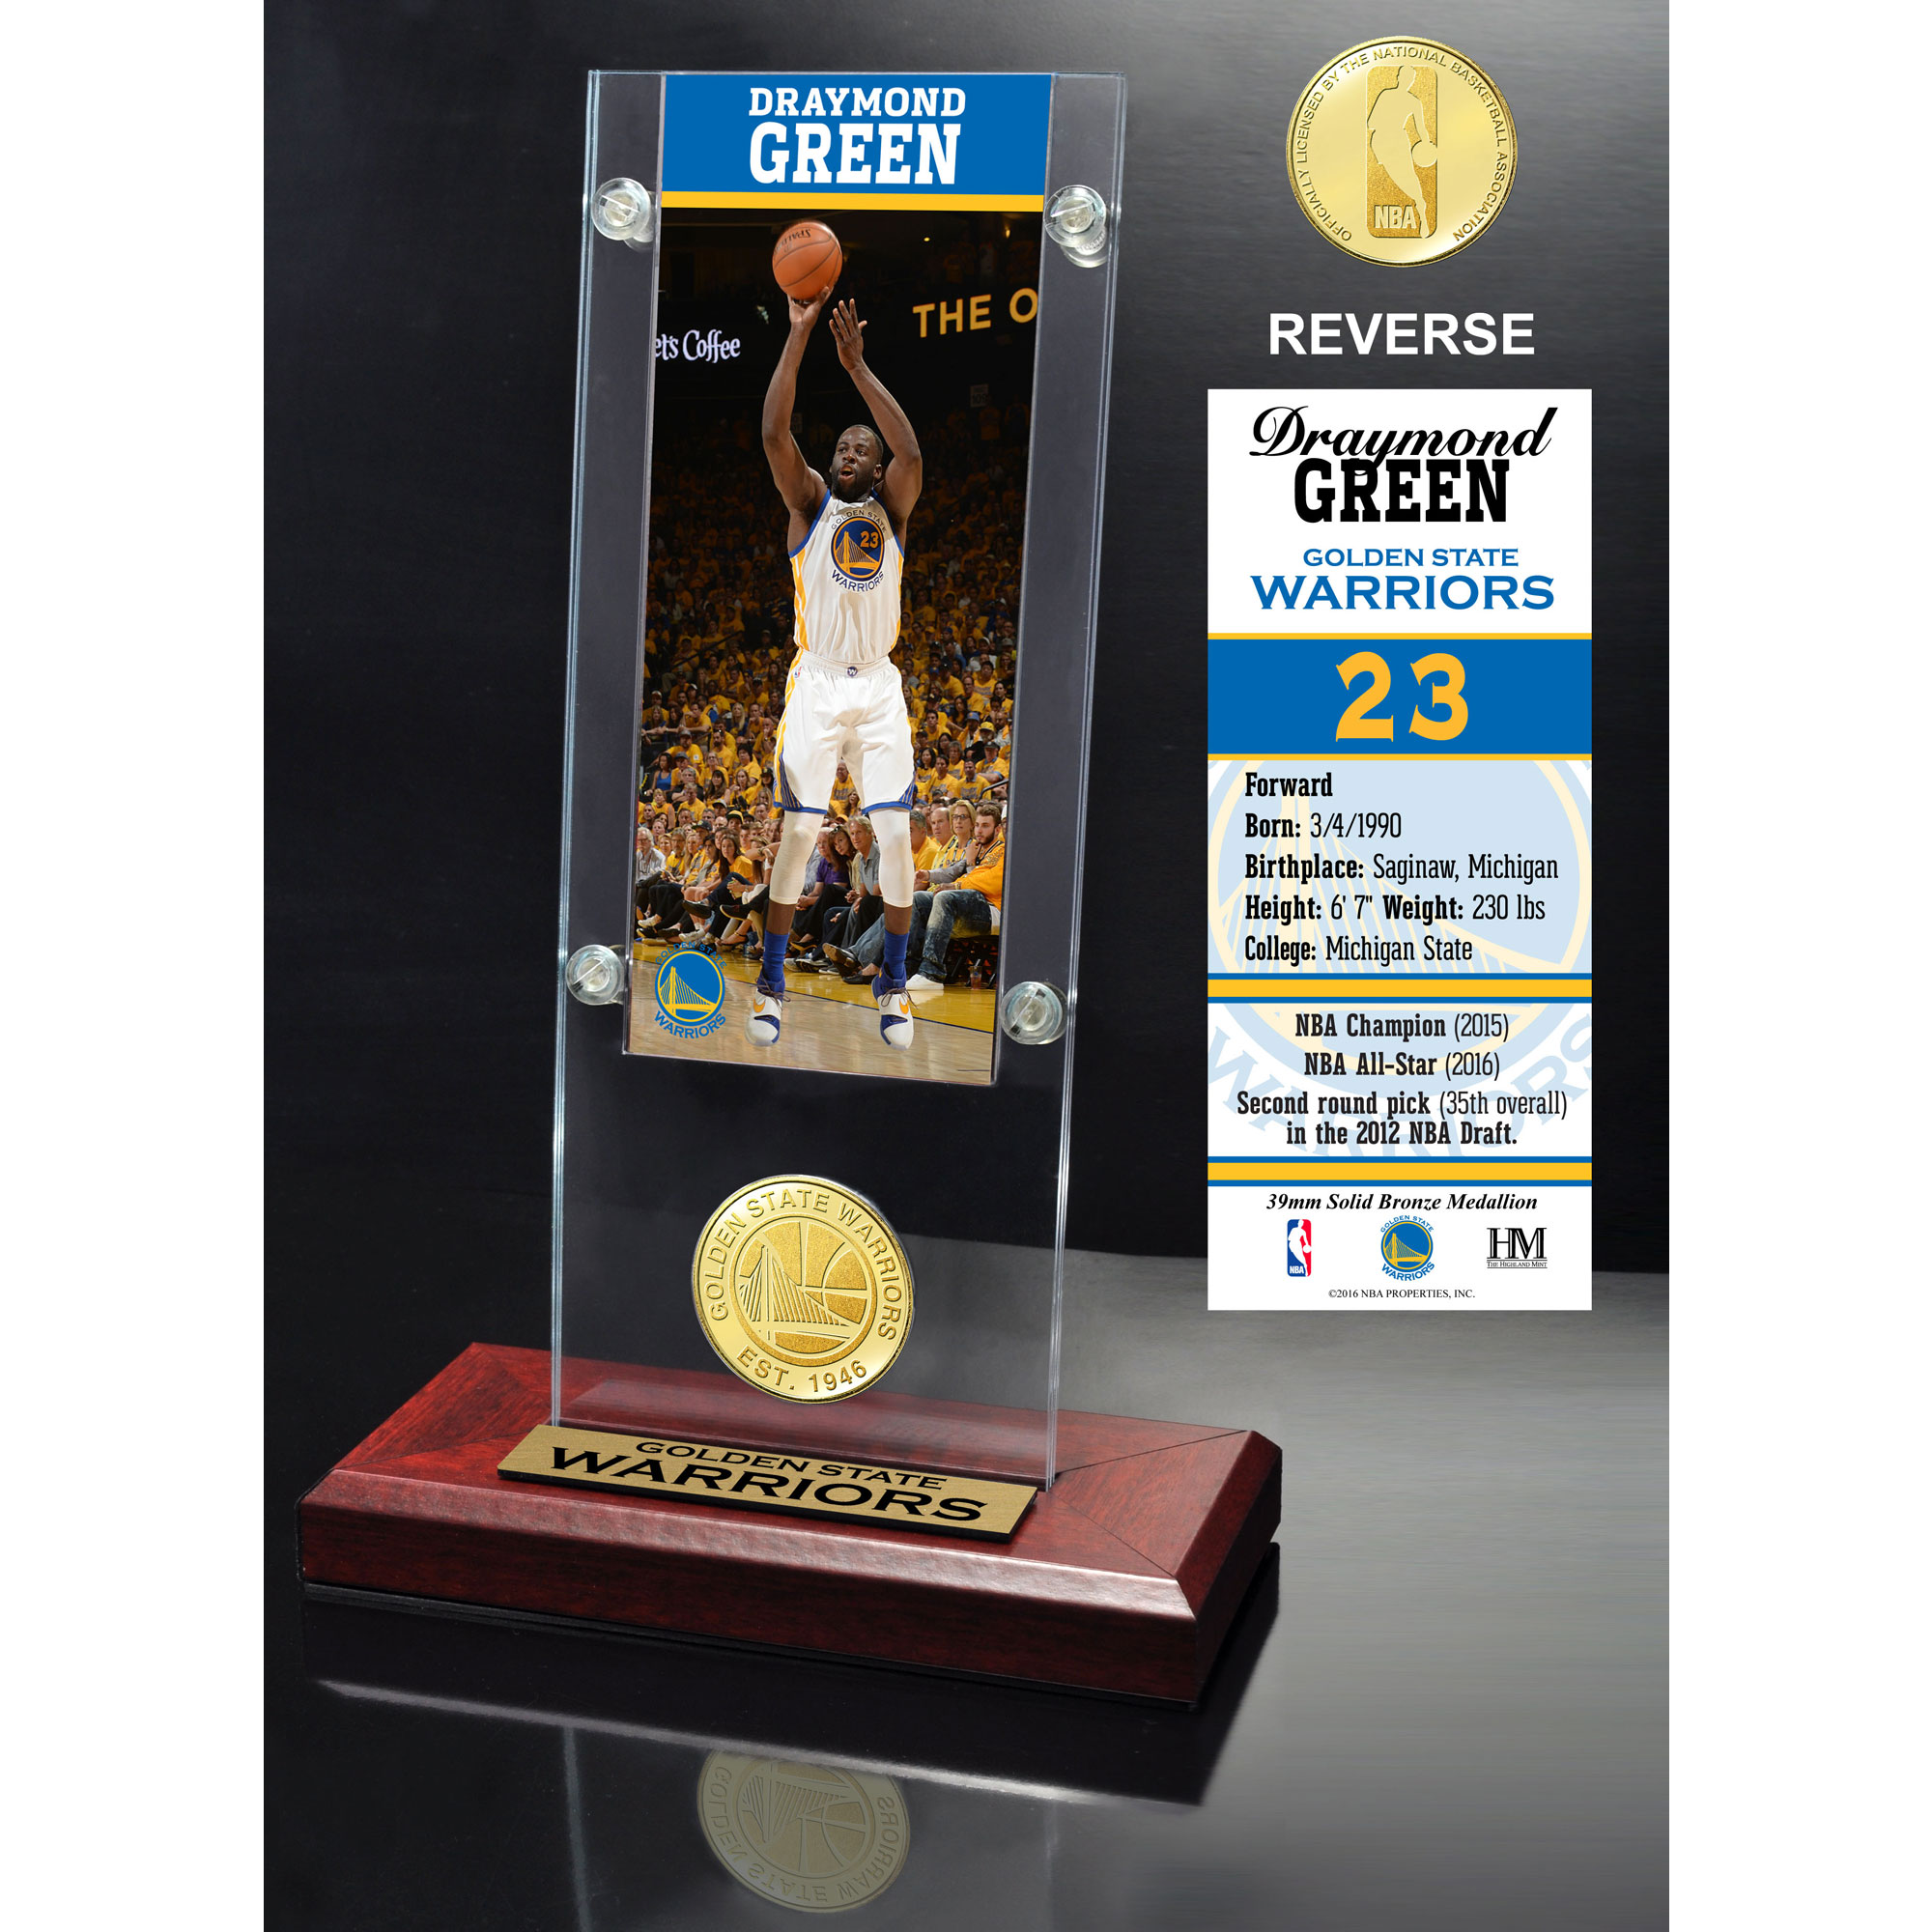 Draymond Green Golden State Warriors Highland Mint Player Ticket Acrylic